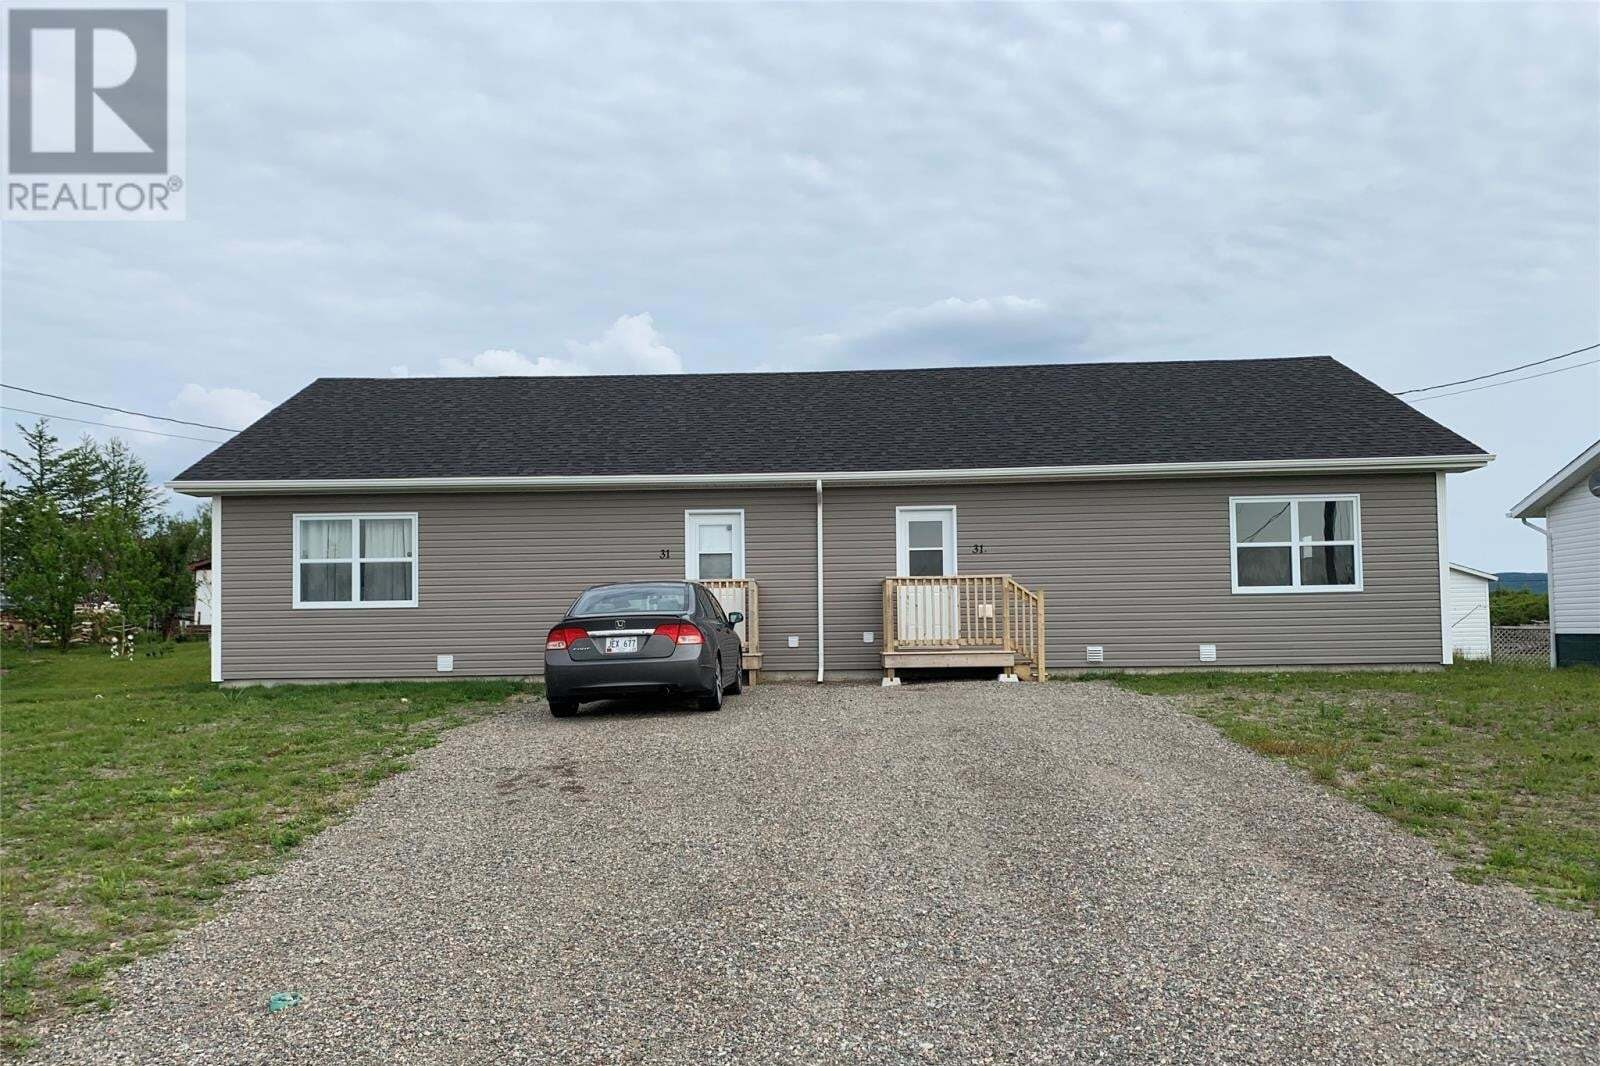 House for sale at 31 Brook St Unit 31a Stephenville Crossing Newfoundland - MLS: 1199859